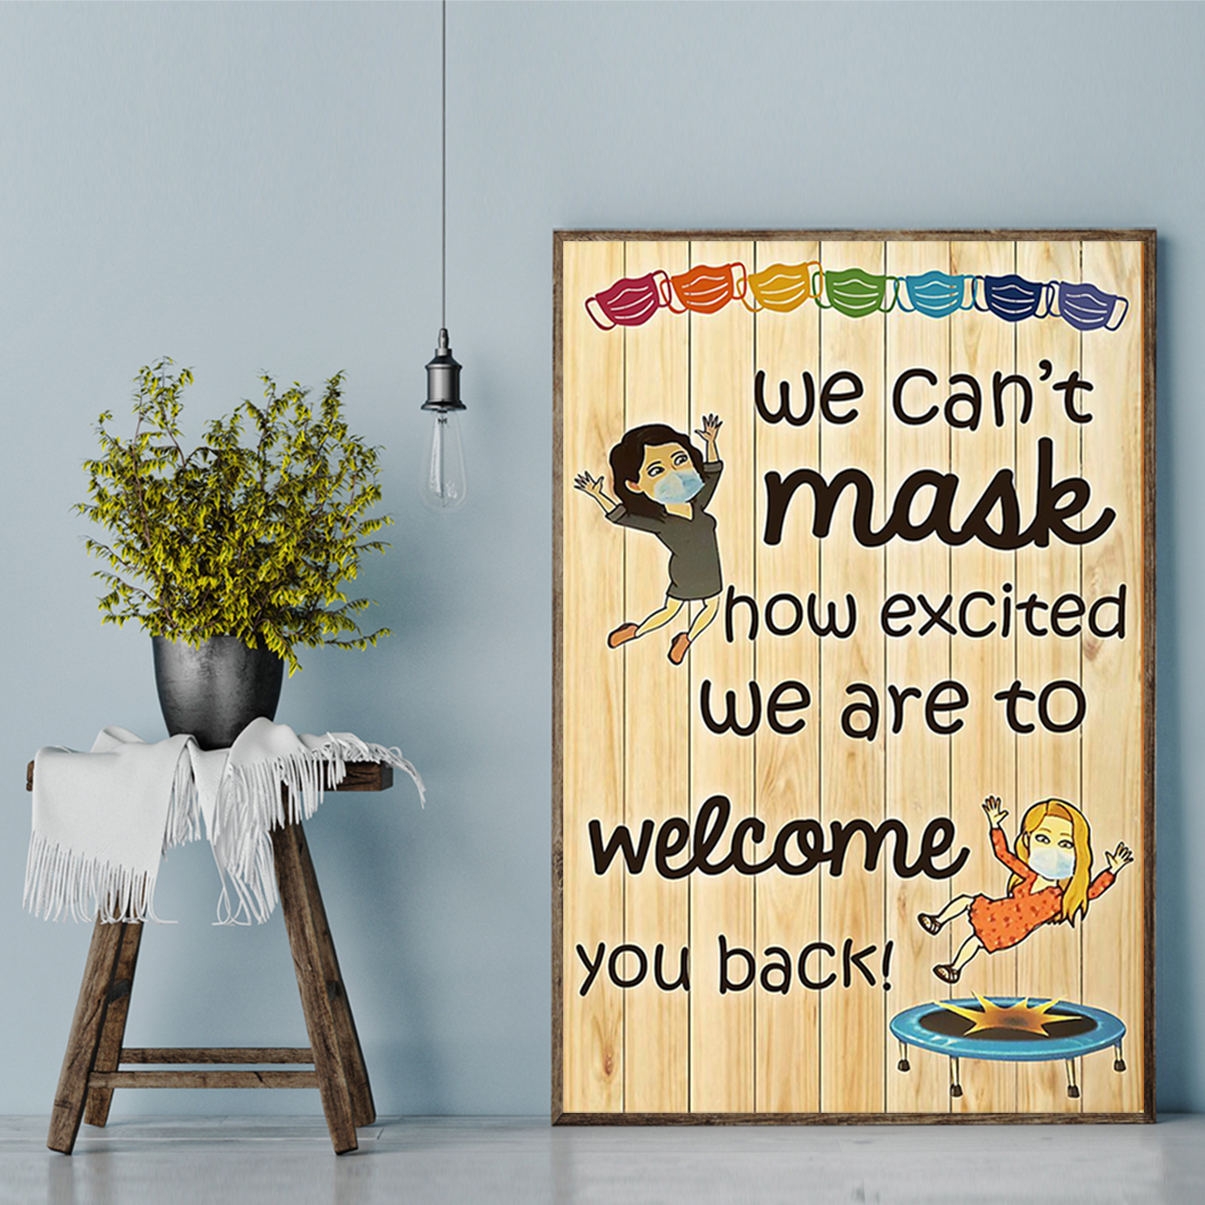 Teacher We can't mask how excited we are to welcome you back poster A2